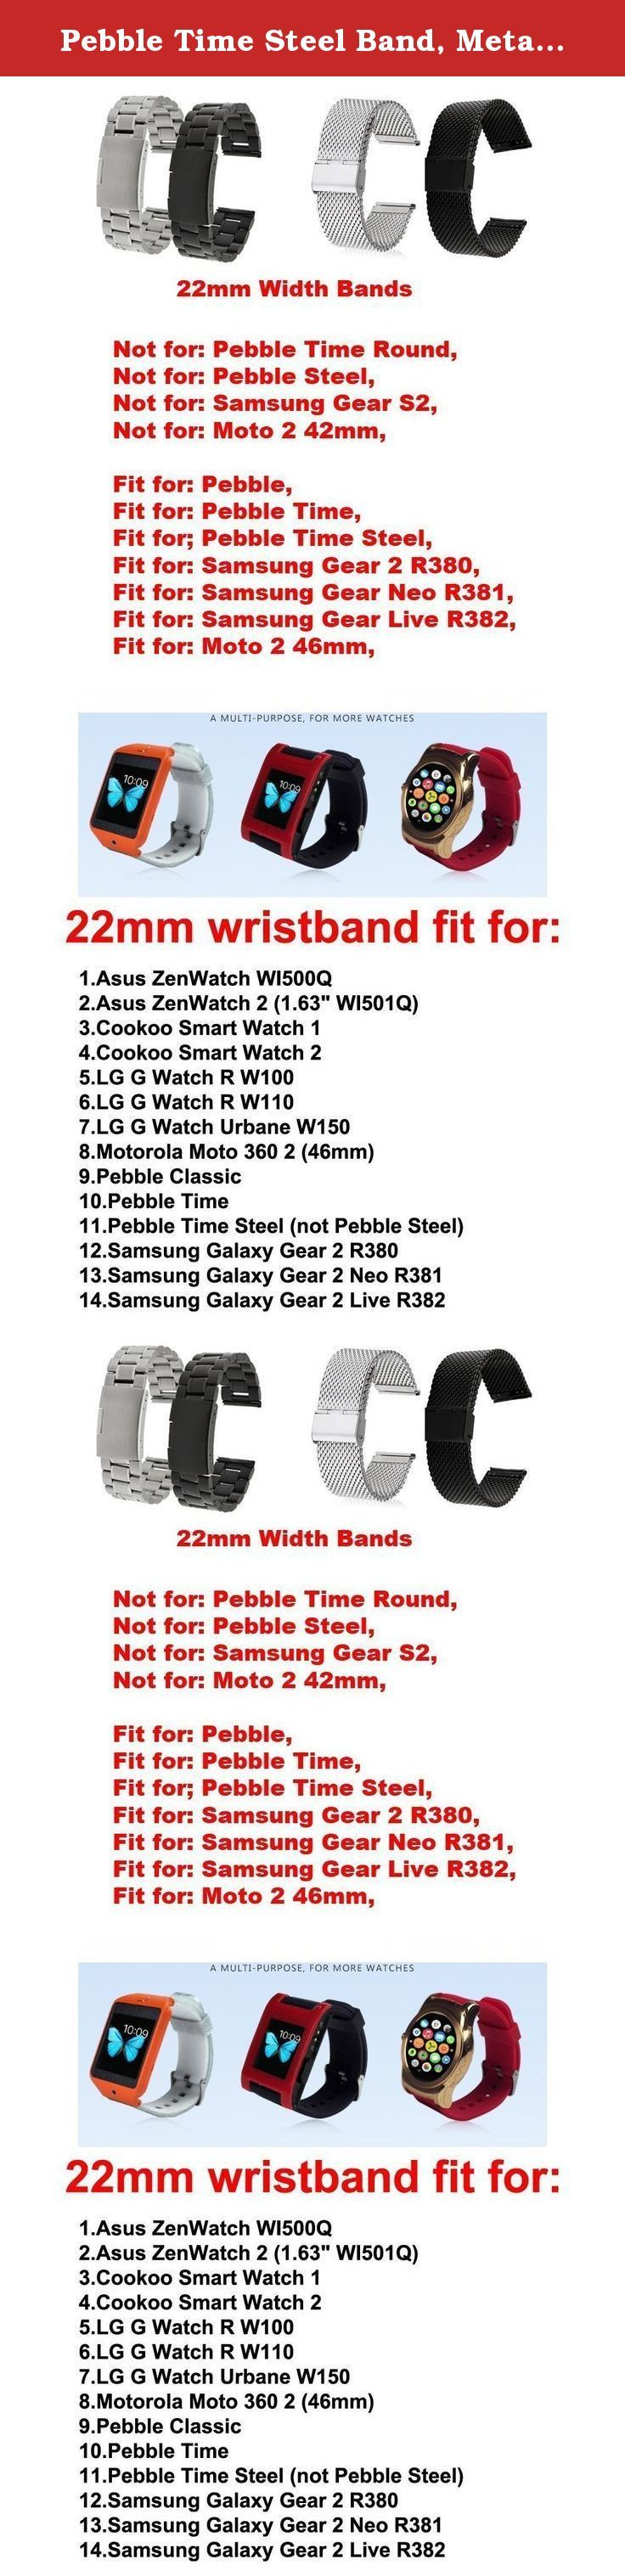 Pebble Time Steel Band, Metal, Replacement Stainless Steel Watch Strap for Pebble Time Steel (NOT Pebble Steel) Smart Watch /No Watch - MeshBlack. Metal Watchband/ Stainless Steel Strap fits for (Pebble Time Steel) Smart Watch, Please NOTE: Not Pebble Steel With Prefect workmanship, fashion design, comfortable feeling, stylish look, giving you noble wearing experience, easy to use, come with a set of tools Easy to install and remove; Width: 22mm; Length adjustable length; Best metal links...